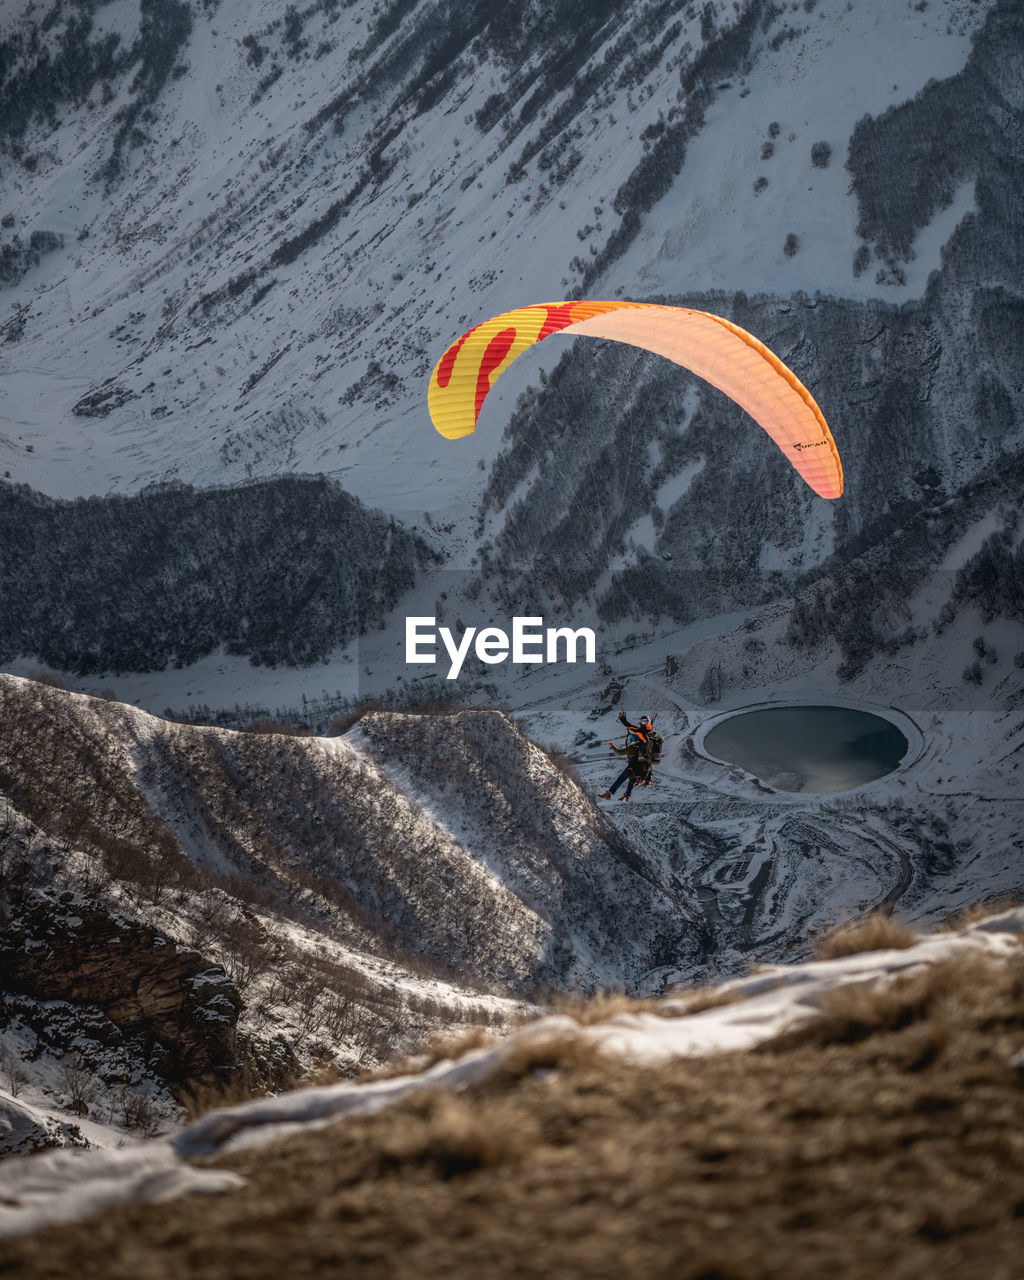 Low angle view of person paragliding against mountain